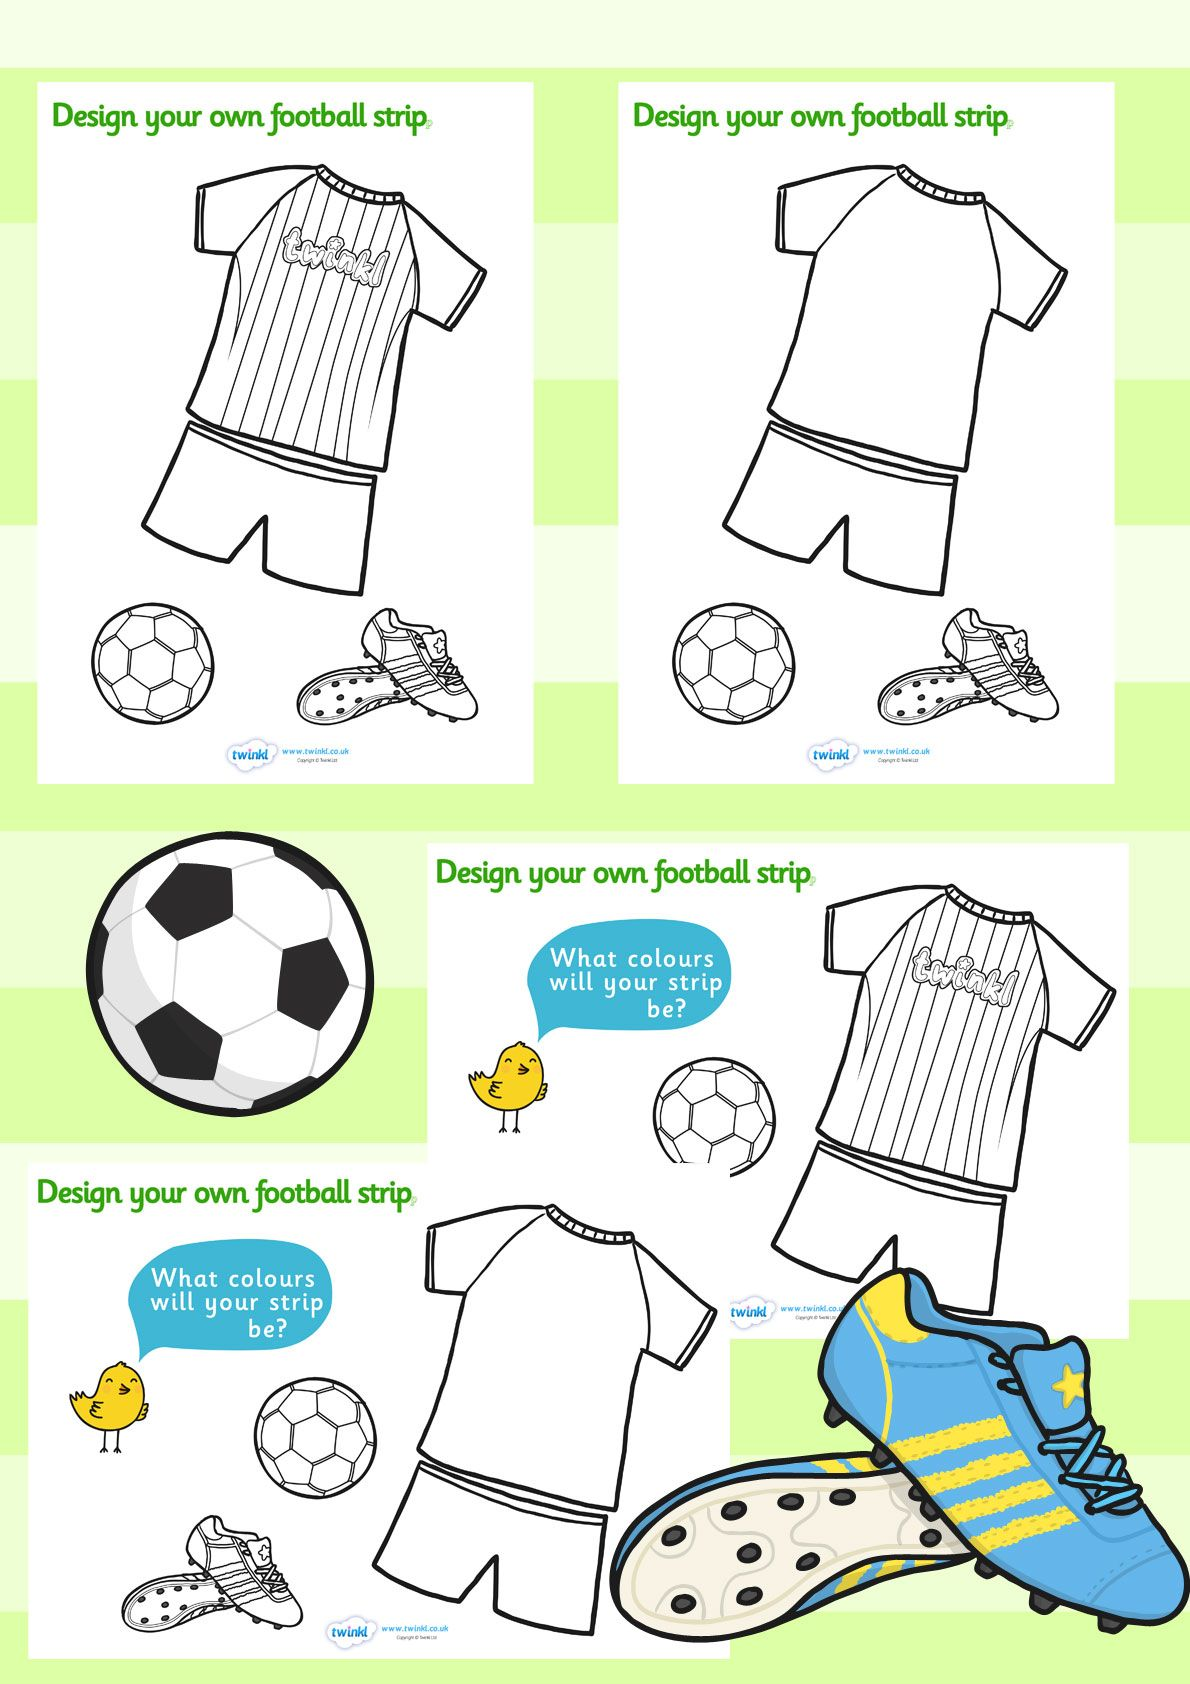 Football/World Cup- Design a football strip worksheet